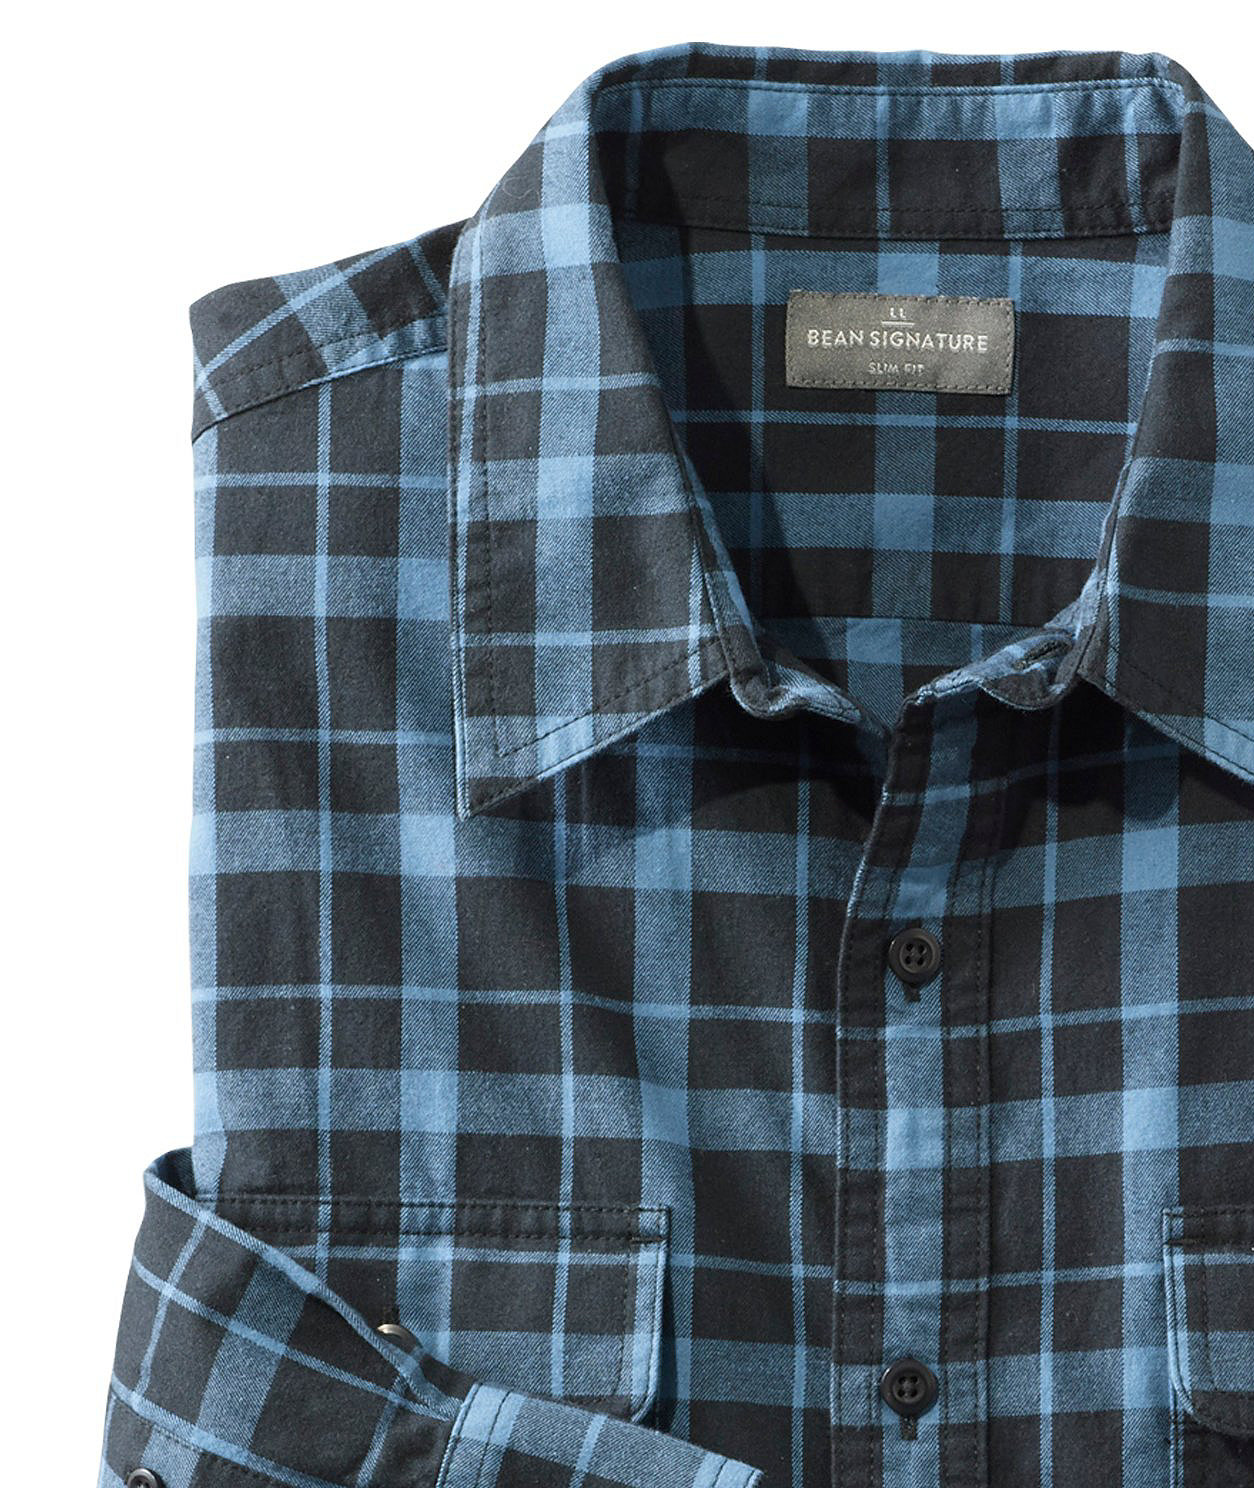 Signature Castine Flannel Shirt, Plaid by L.L.Bean